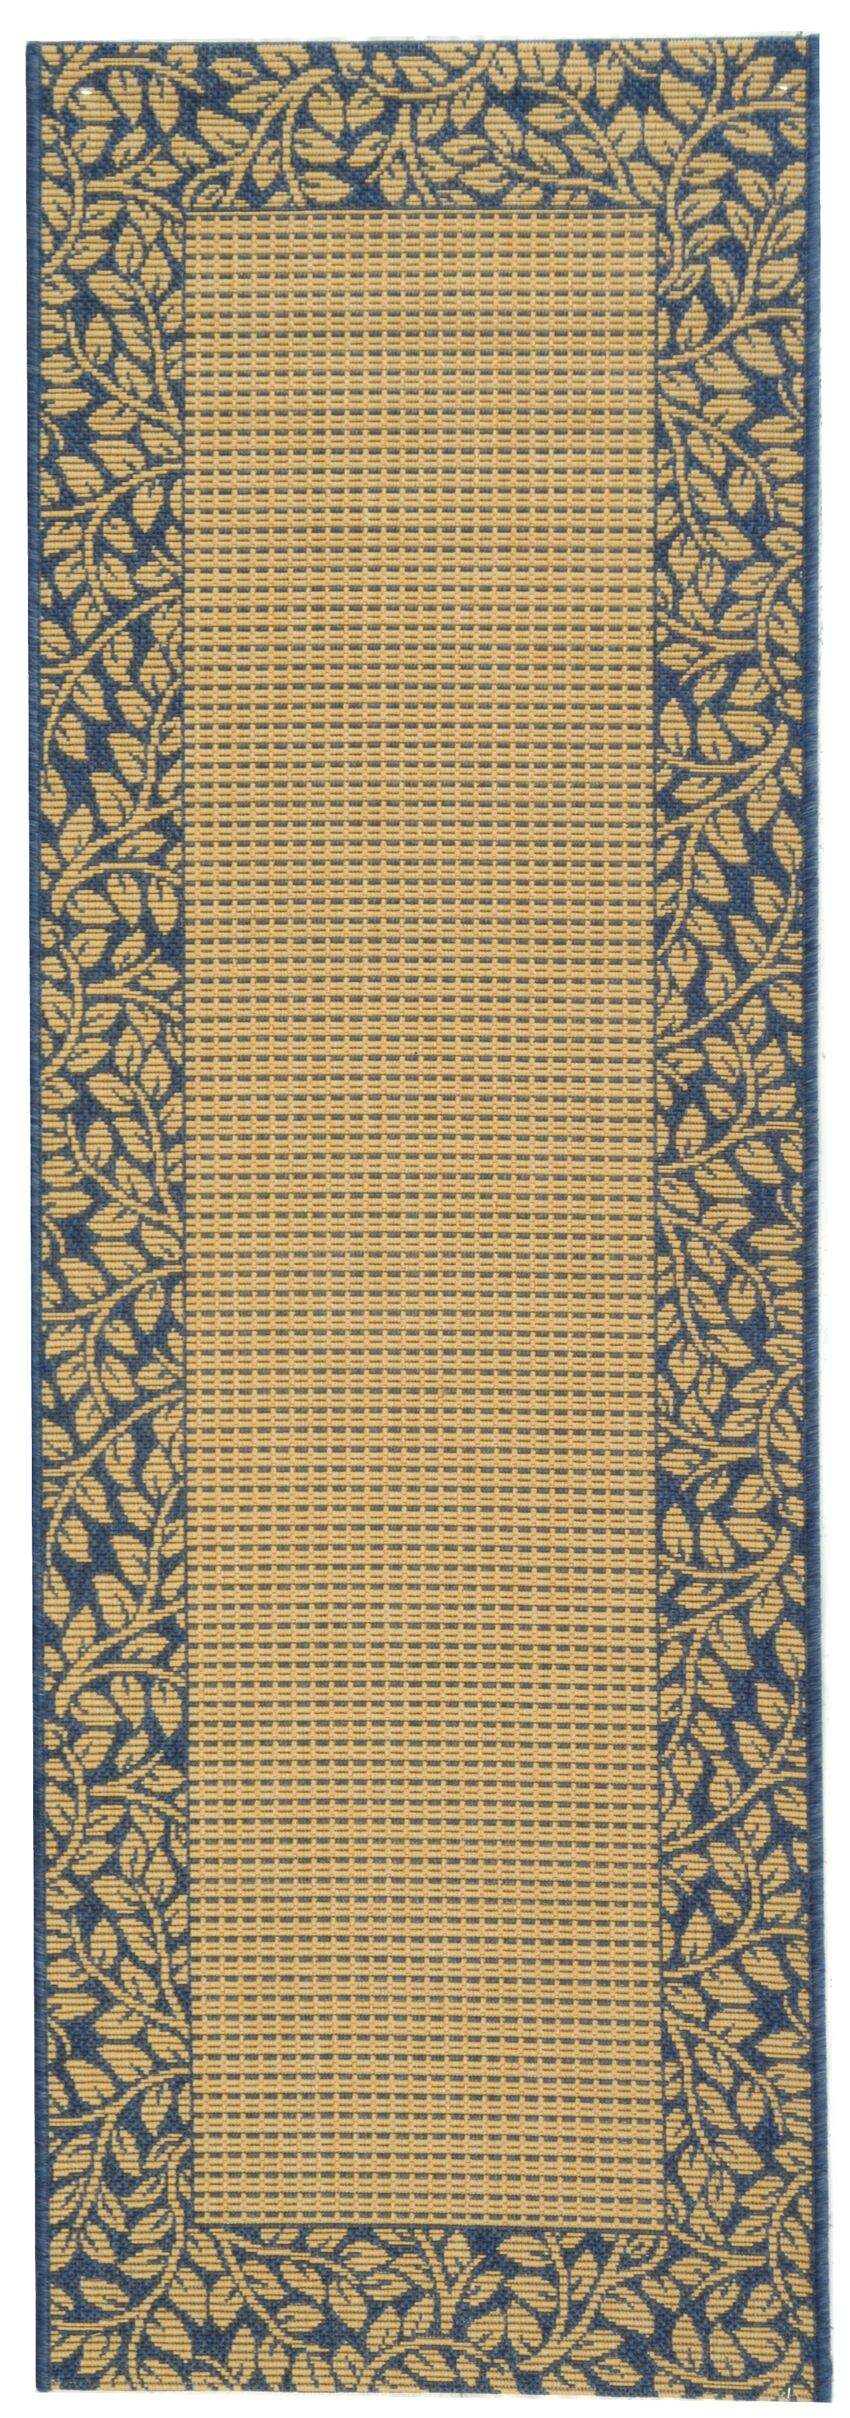 Lippold Brown/Black Outdoor Area Rug Rug Size: Runner 2'4